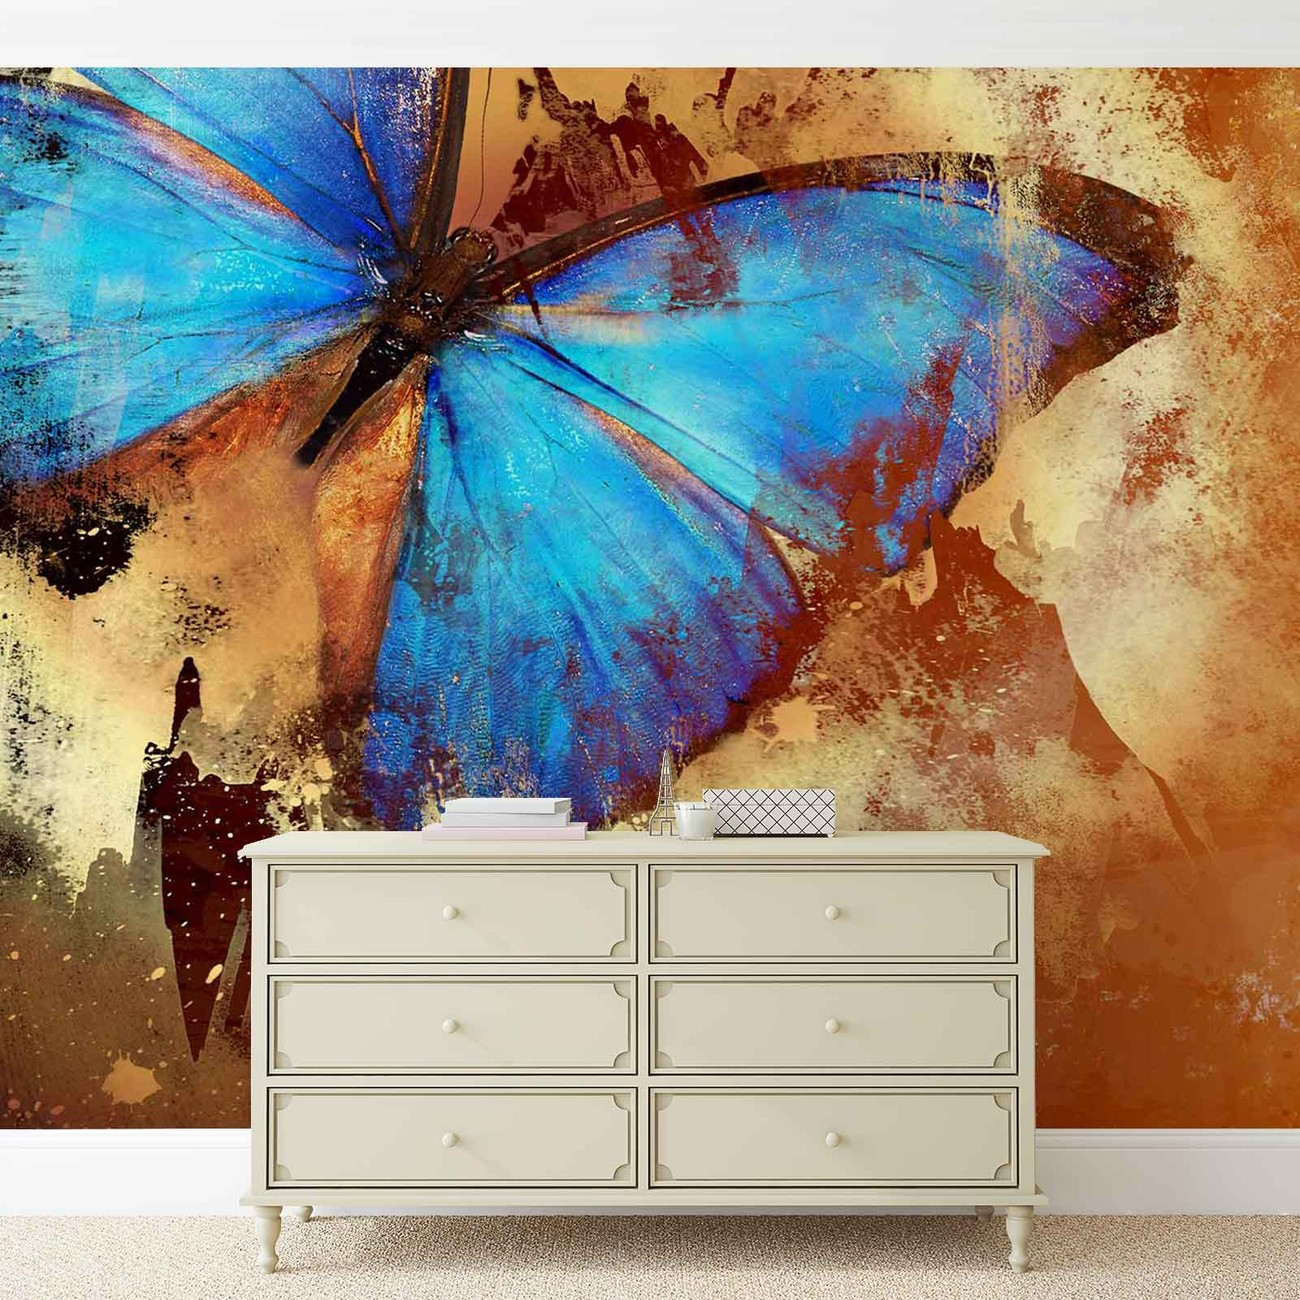 Butterfly art wall paper mural buy at europosters for Butterfly wall mural